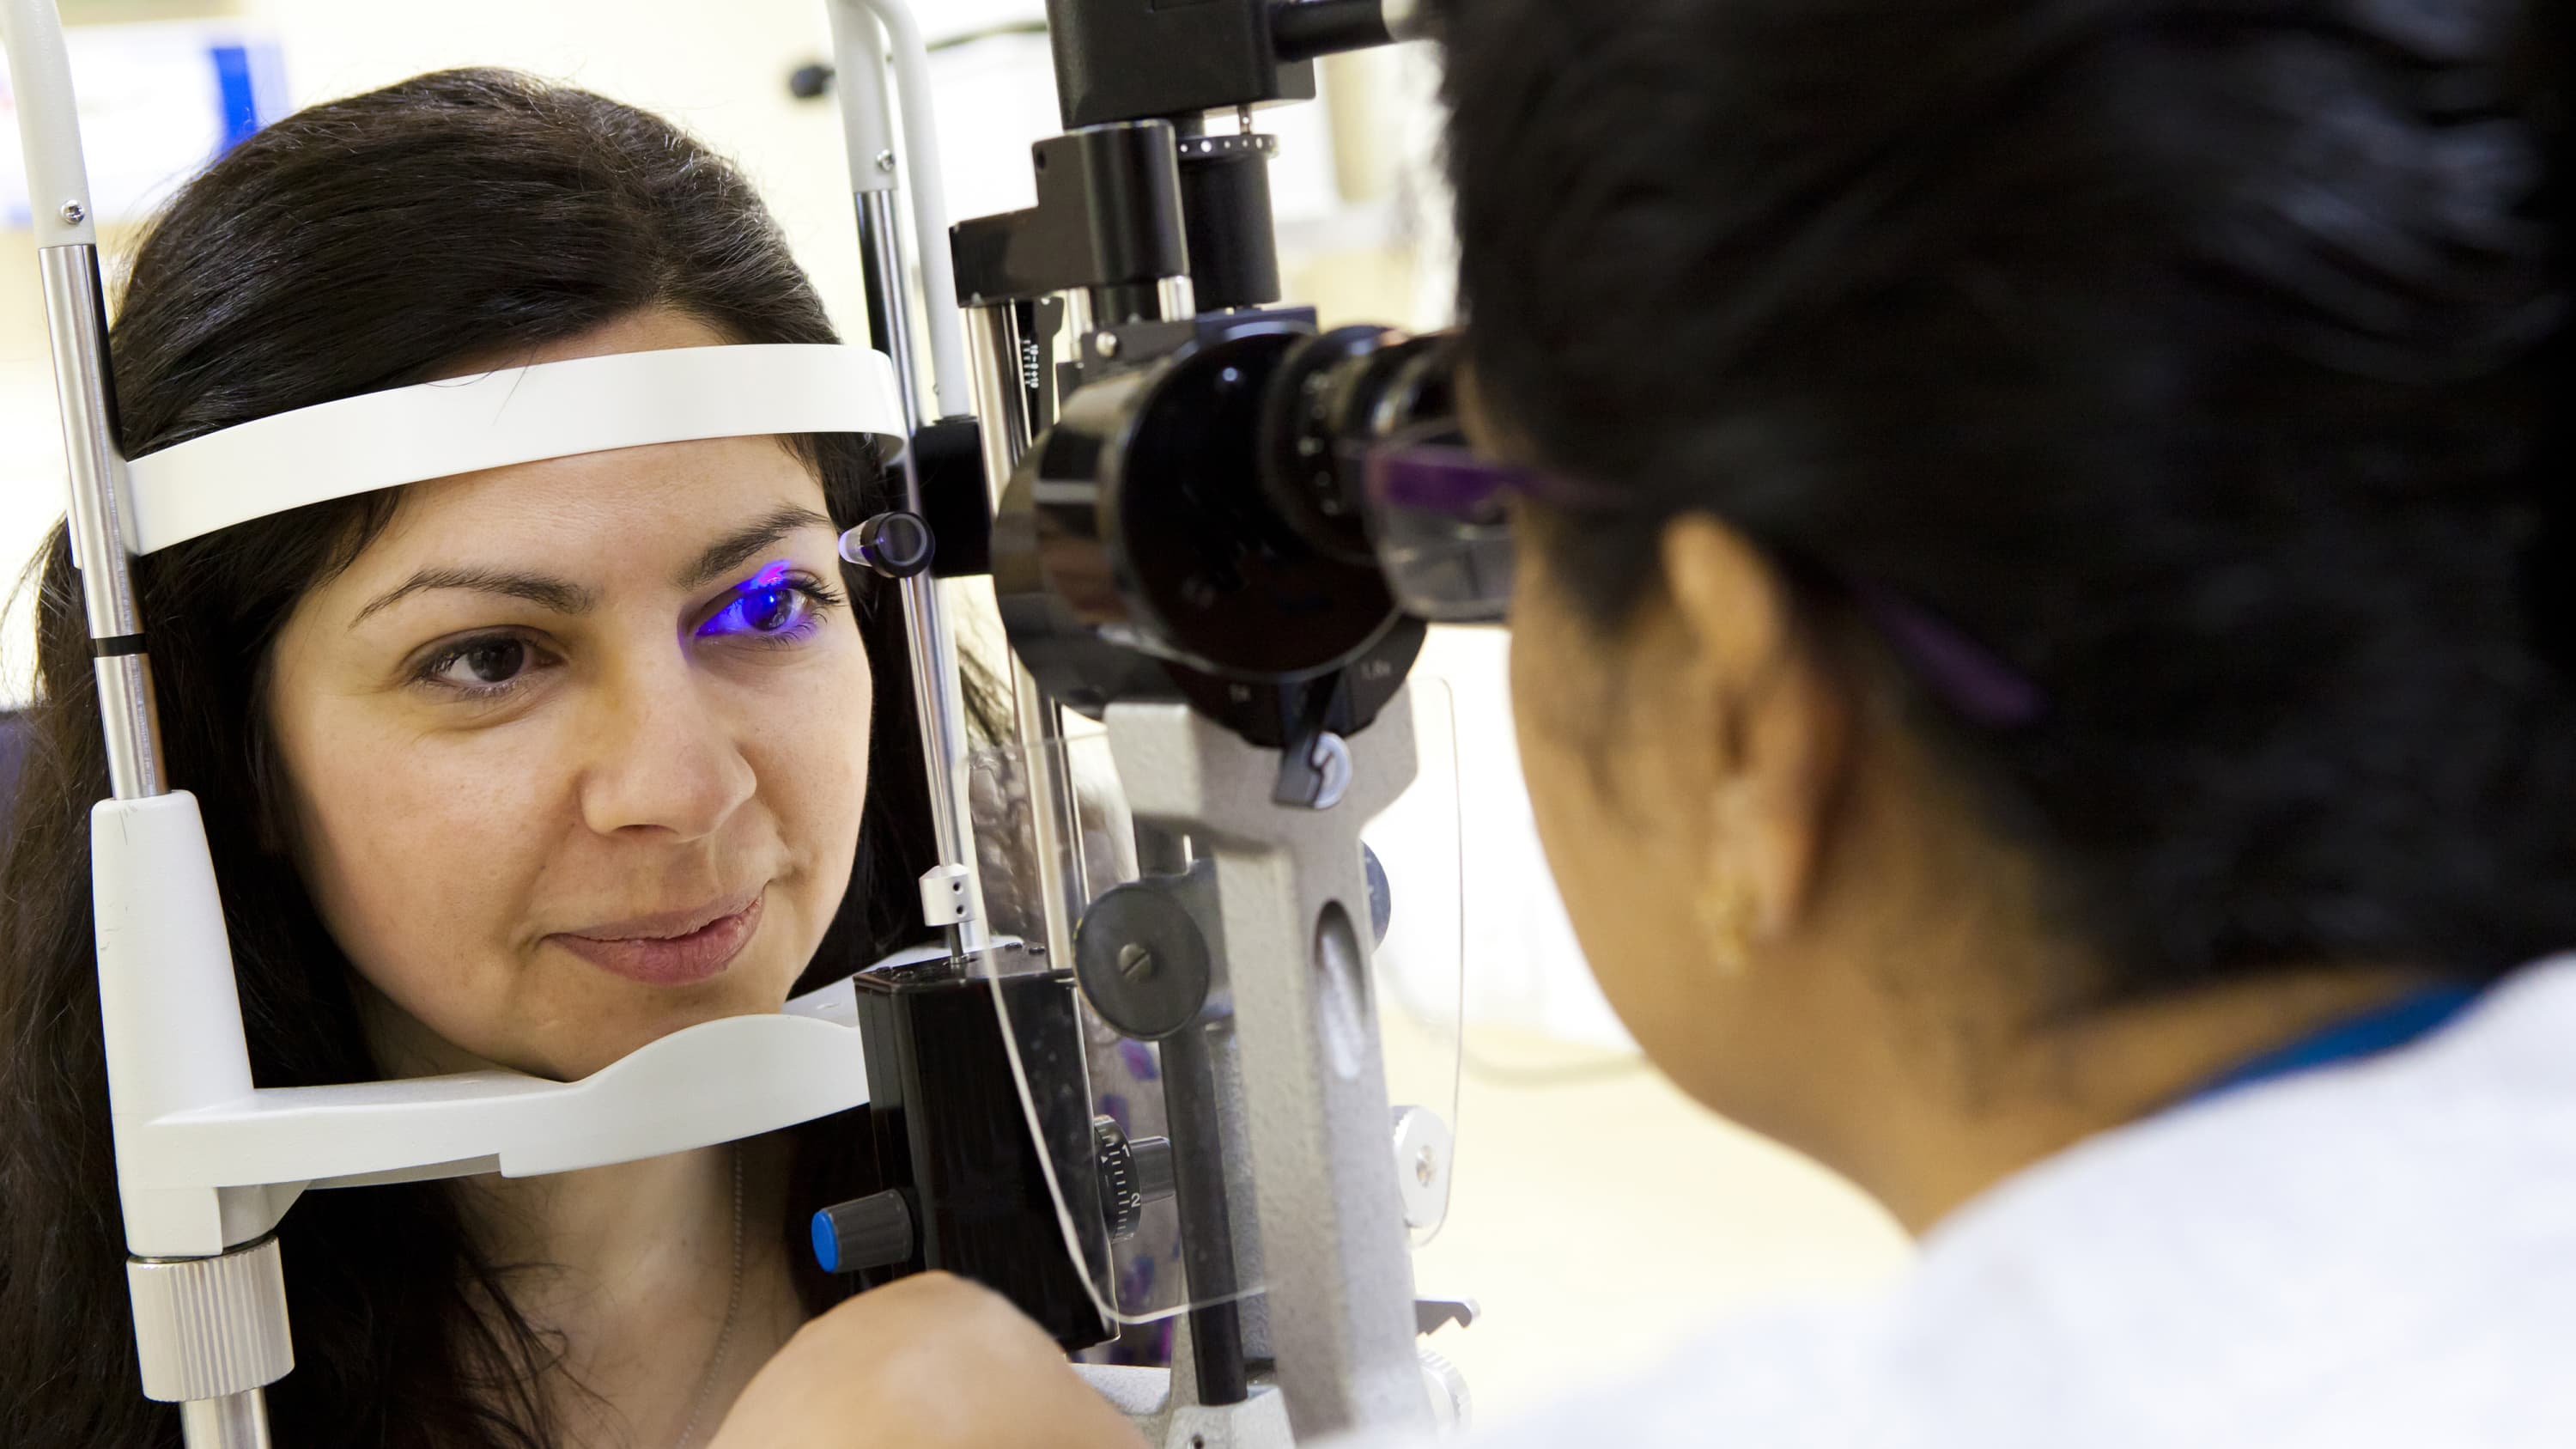 A woman has an eye exam, possibly for glaucoma